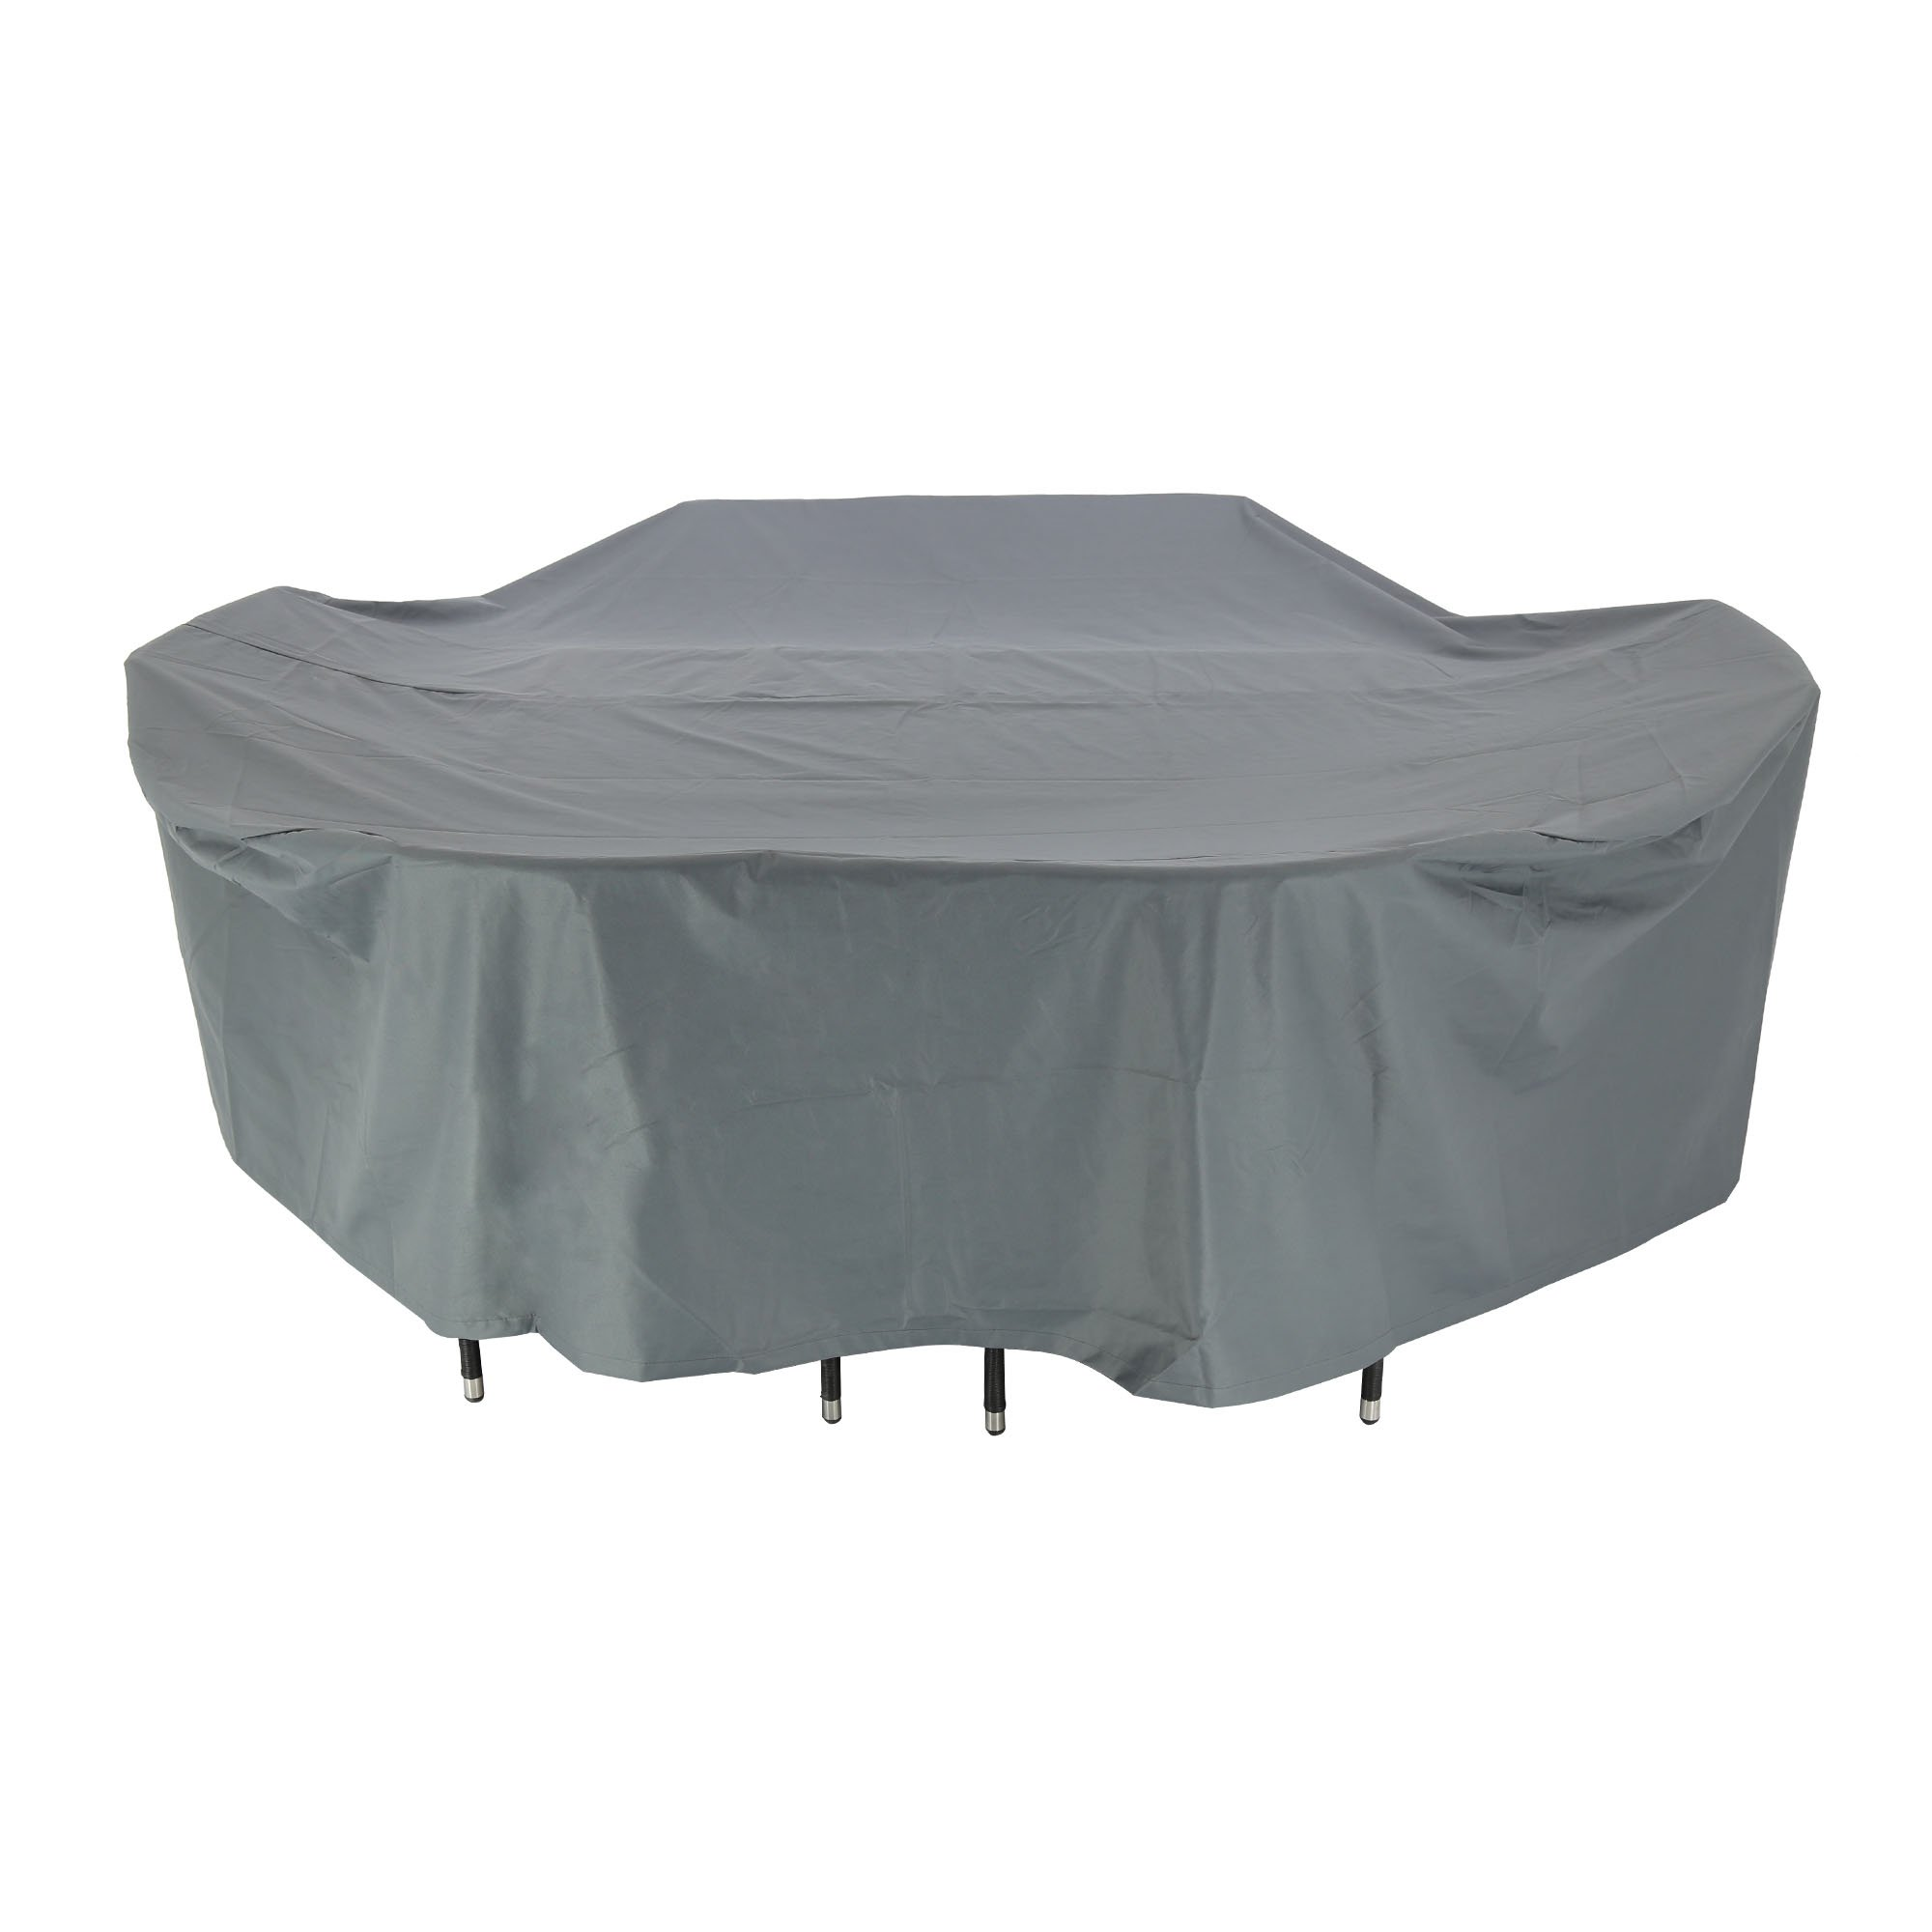 Baner Garden N16 Outdoor Veranda Patio Garden Furniture Set Cover Dinning Table Cover with Durable and Water Resistant Fabric